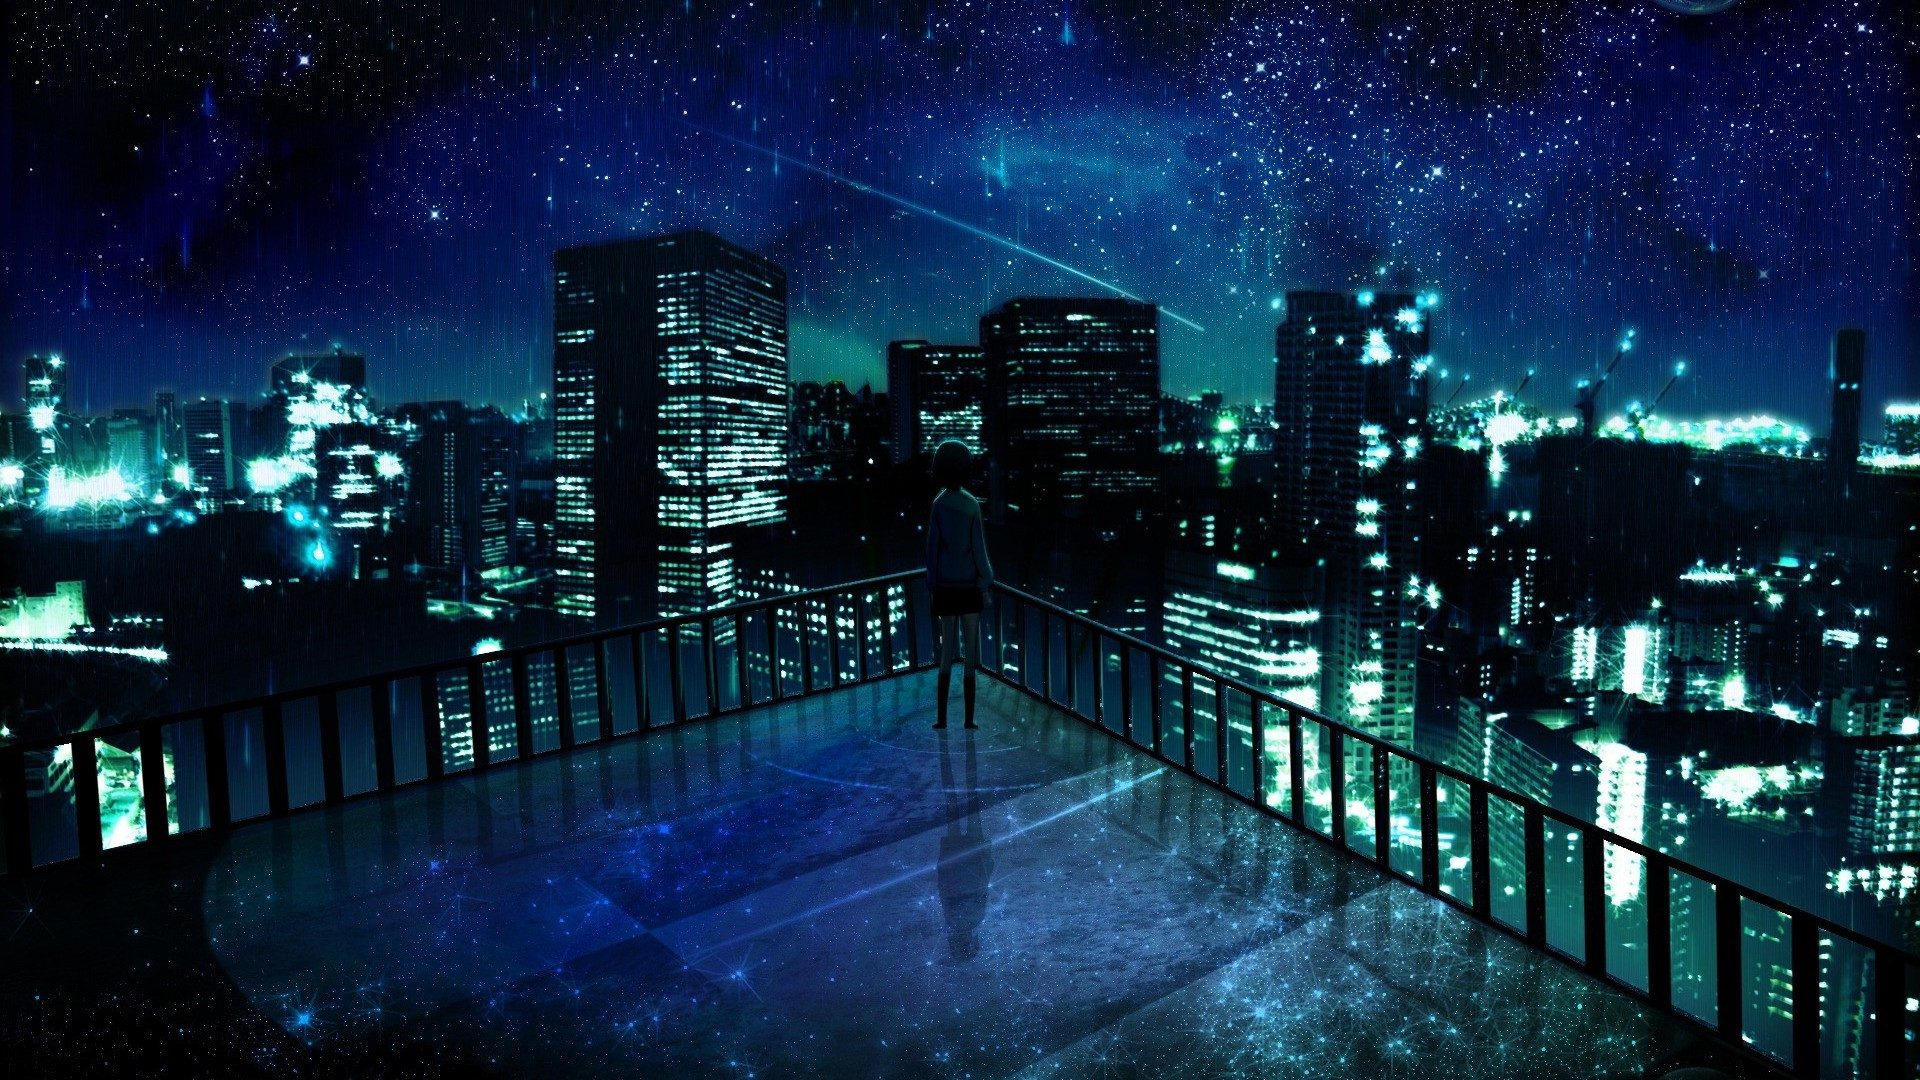 Stunning Anime City Wallpaper 42583 1920x1080 Px